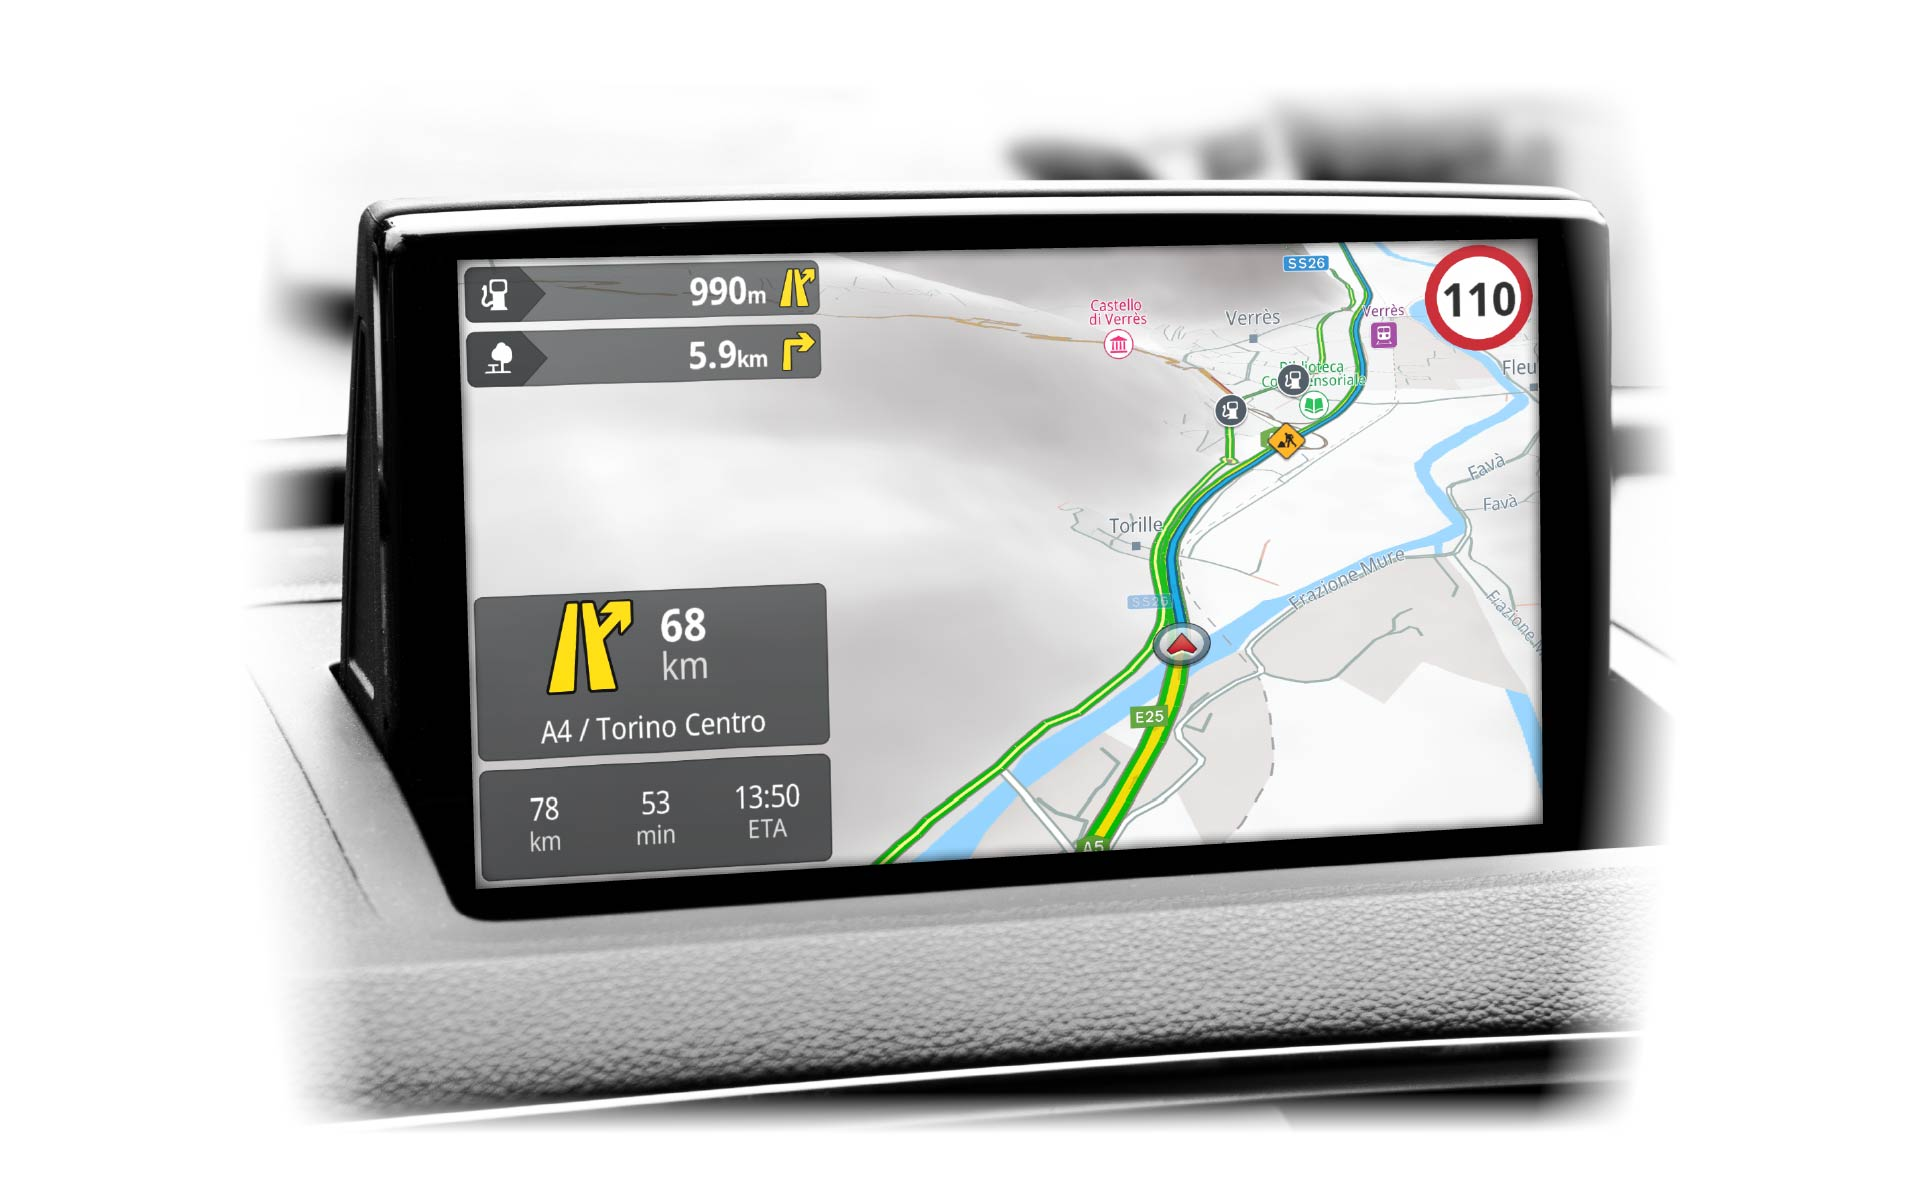 Mireo GPS navigation solutions provide global HERE maps of more than 130 countries, including China, Japan, South Korea, and India.